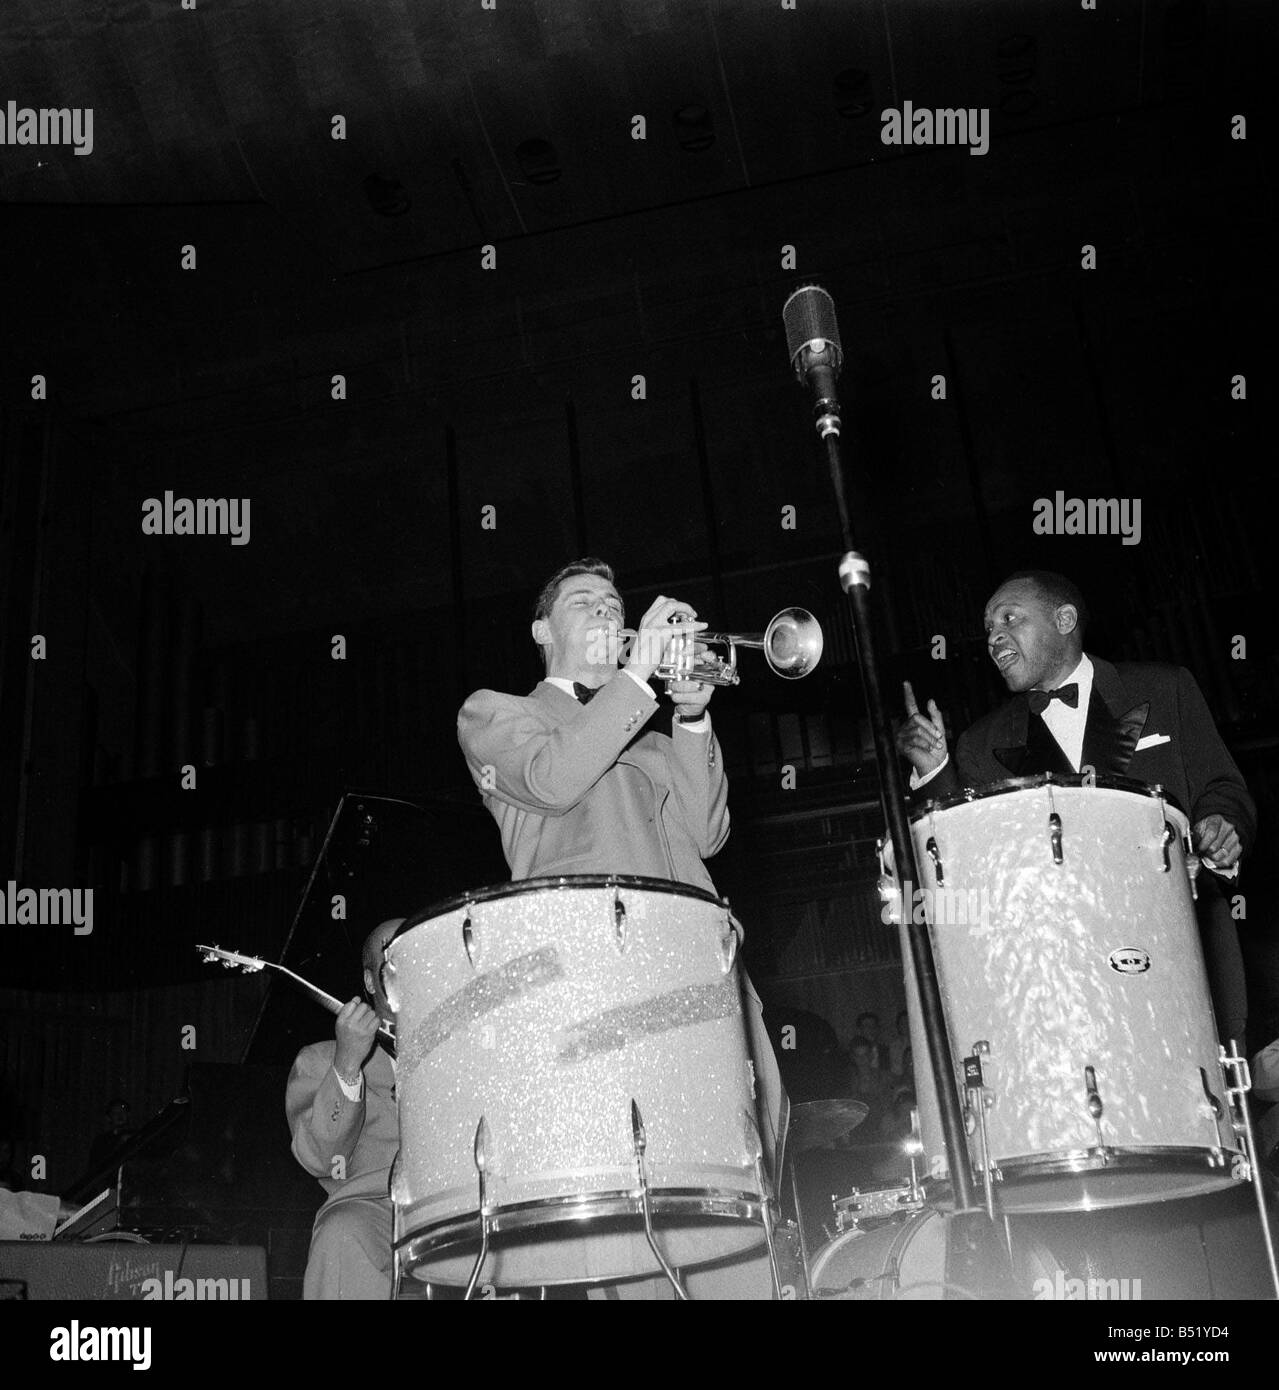 1950s Jazz performers Lionel Hampton band leader at the Royal Festival hall in London Band member plays trumpet - Stock Image